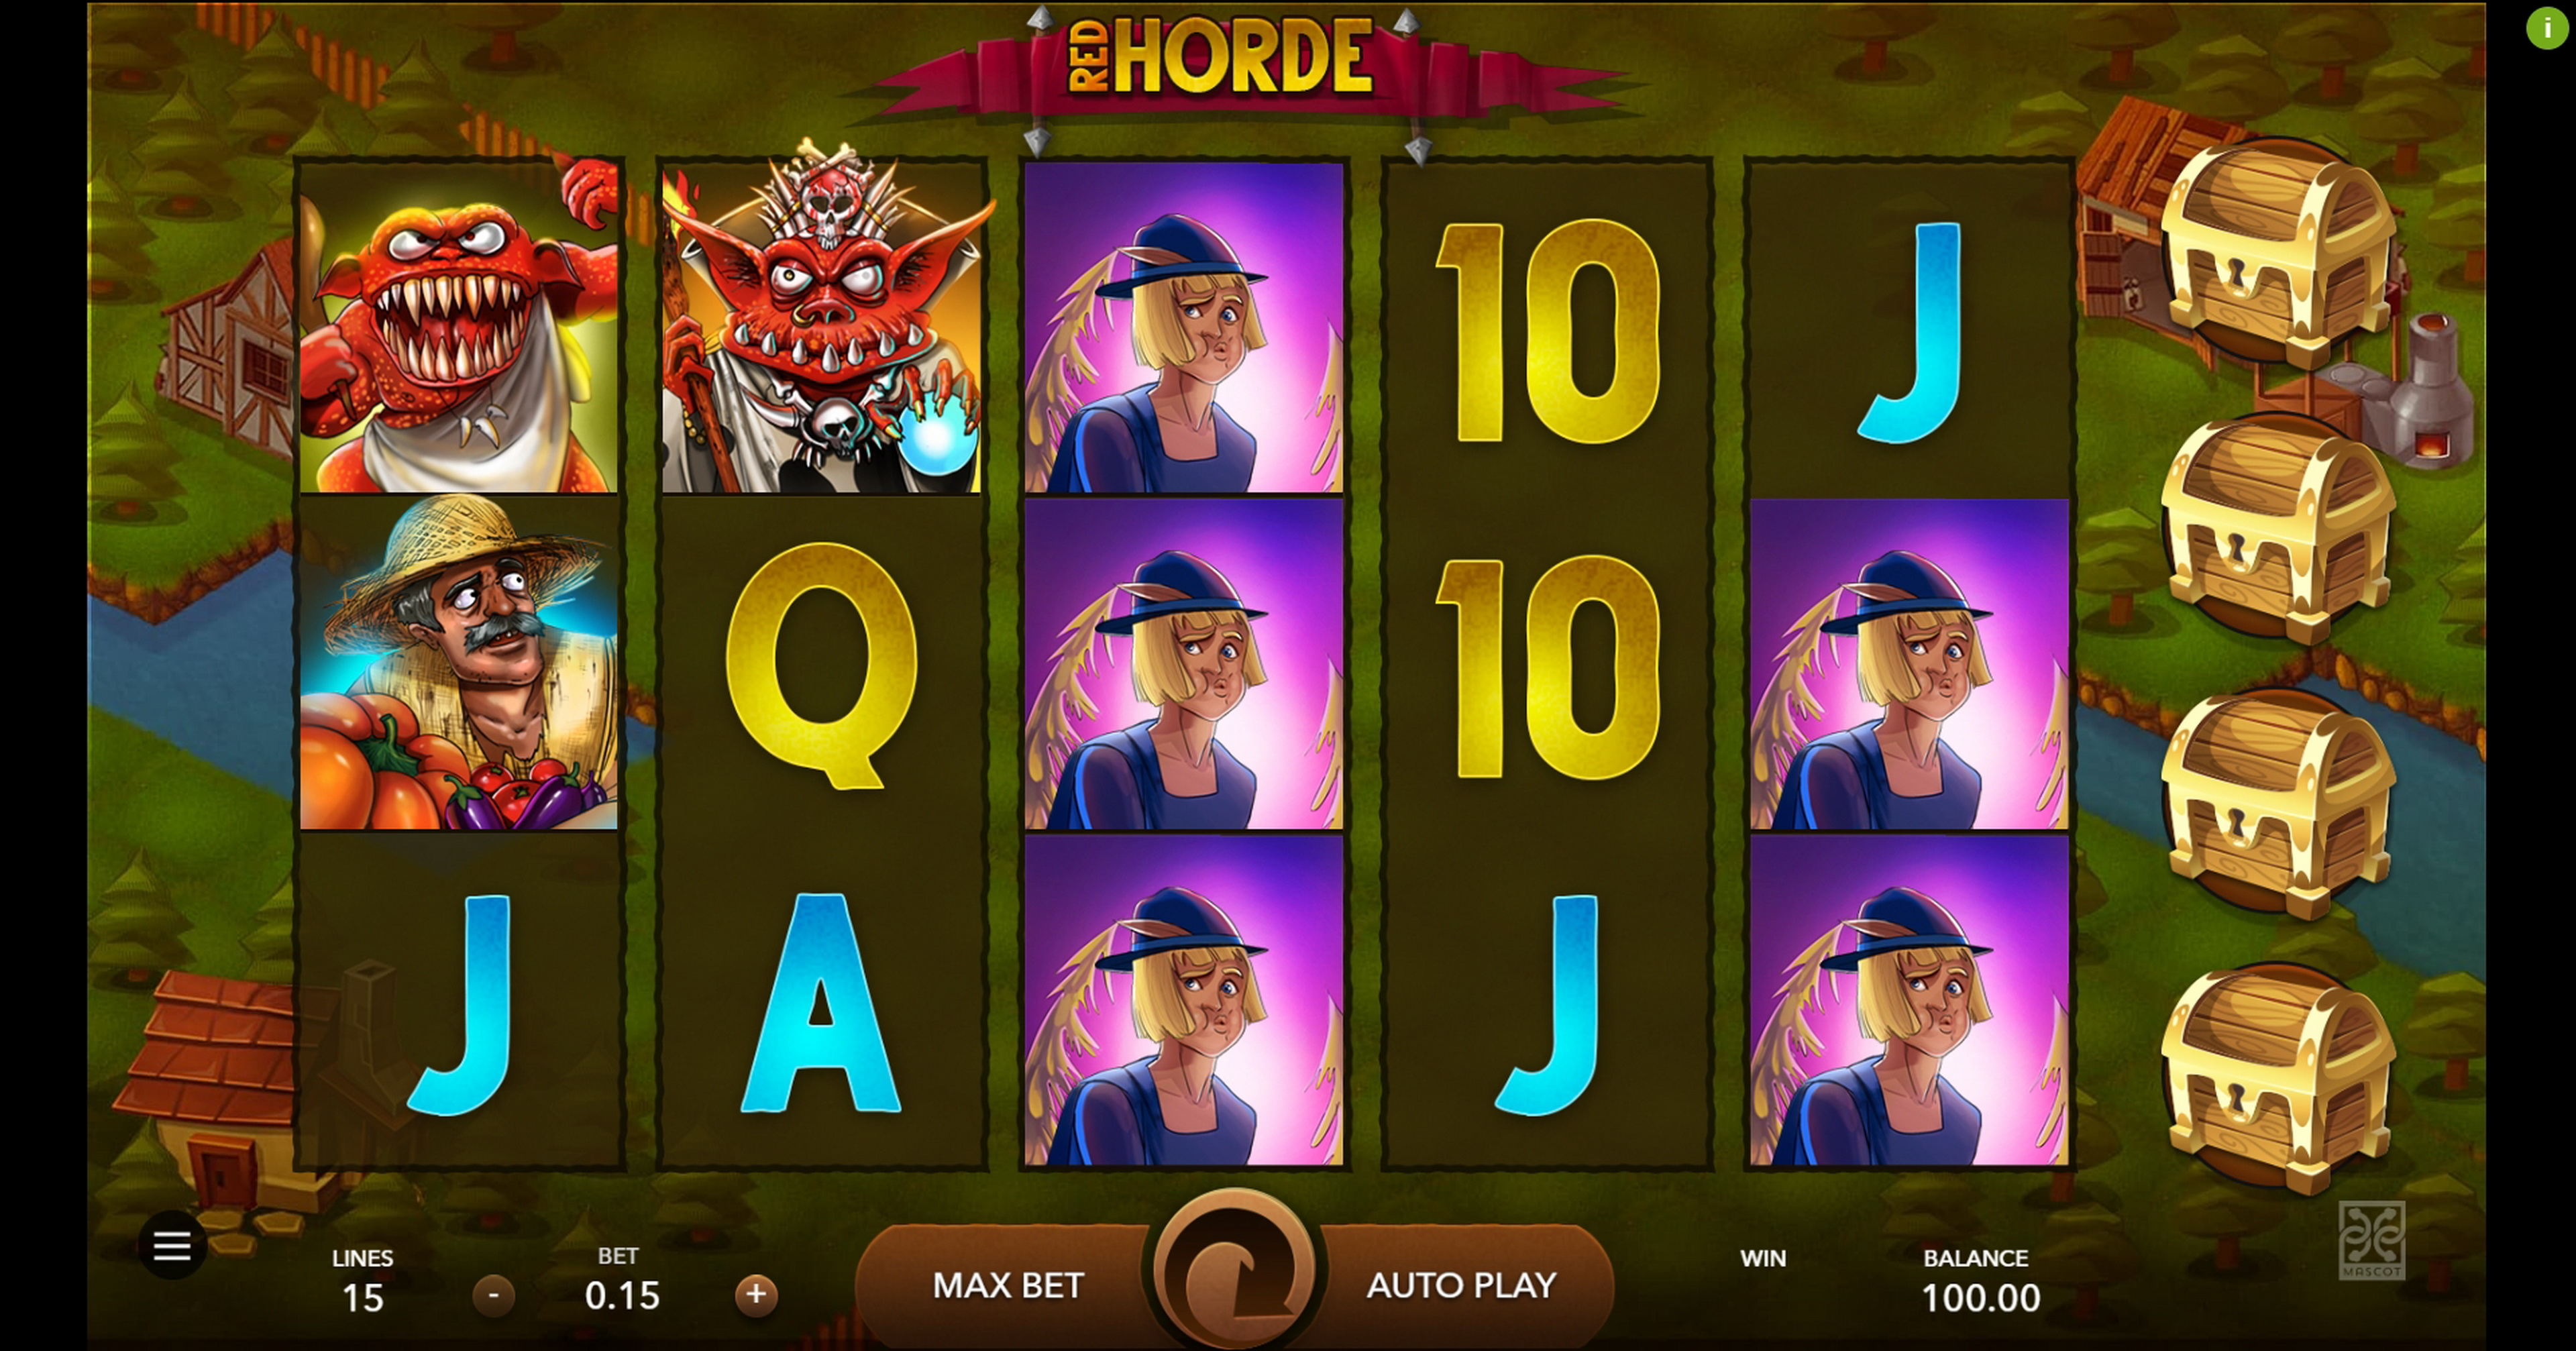 Reels in Red Horde Slot Game by Mascot Gaming